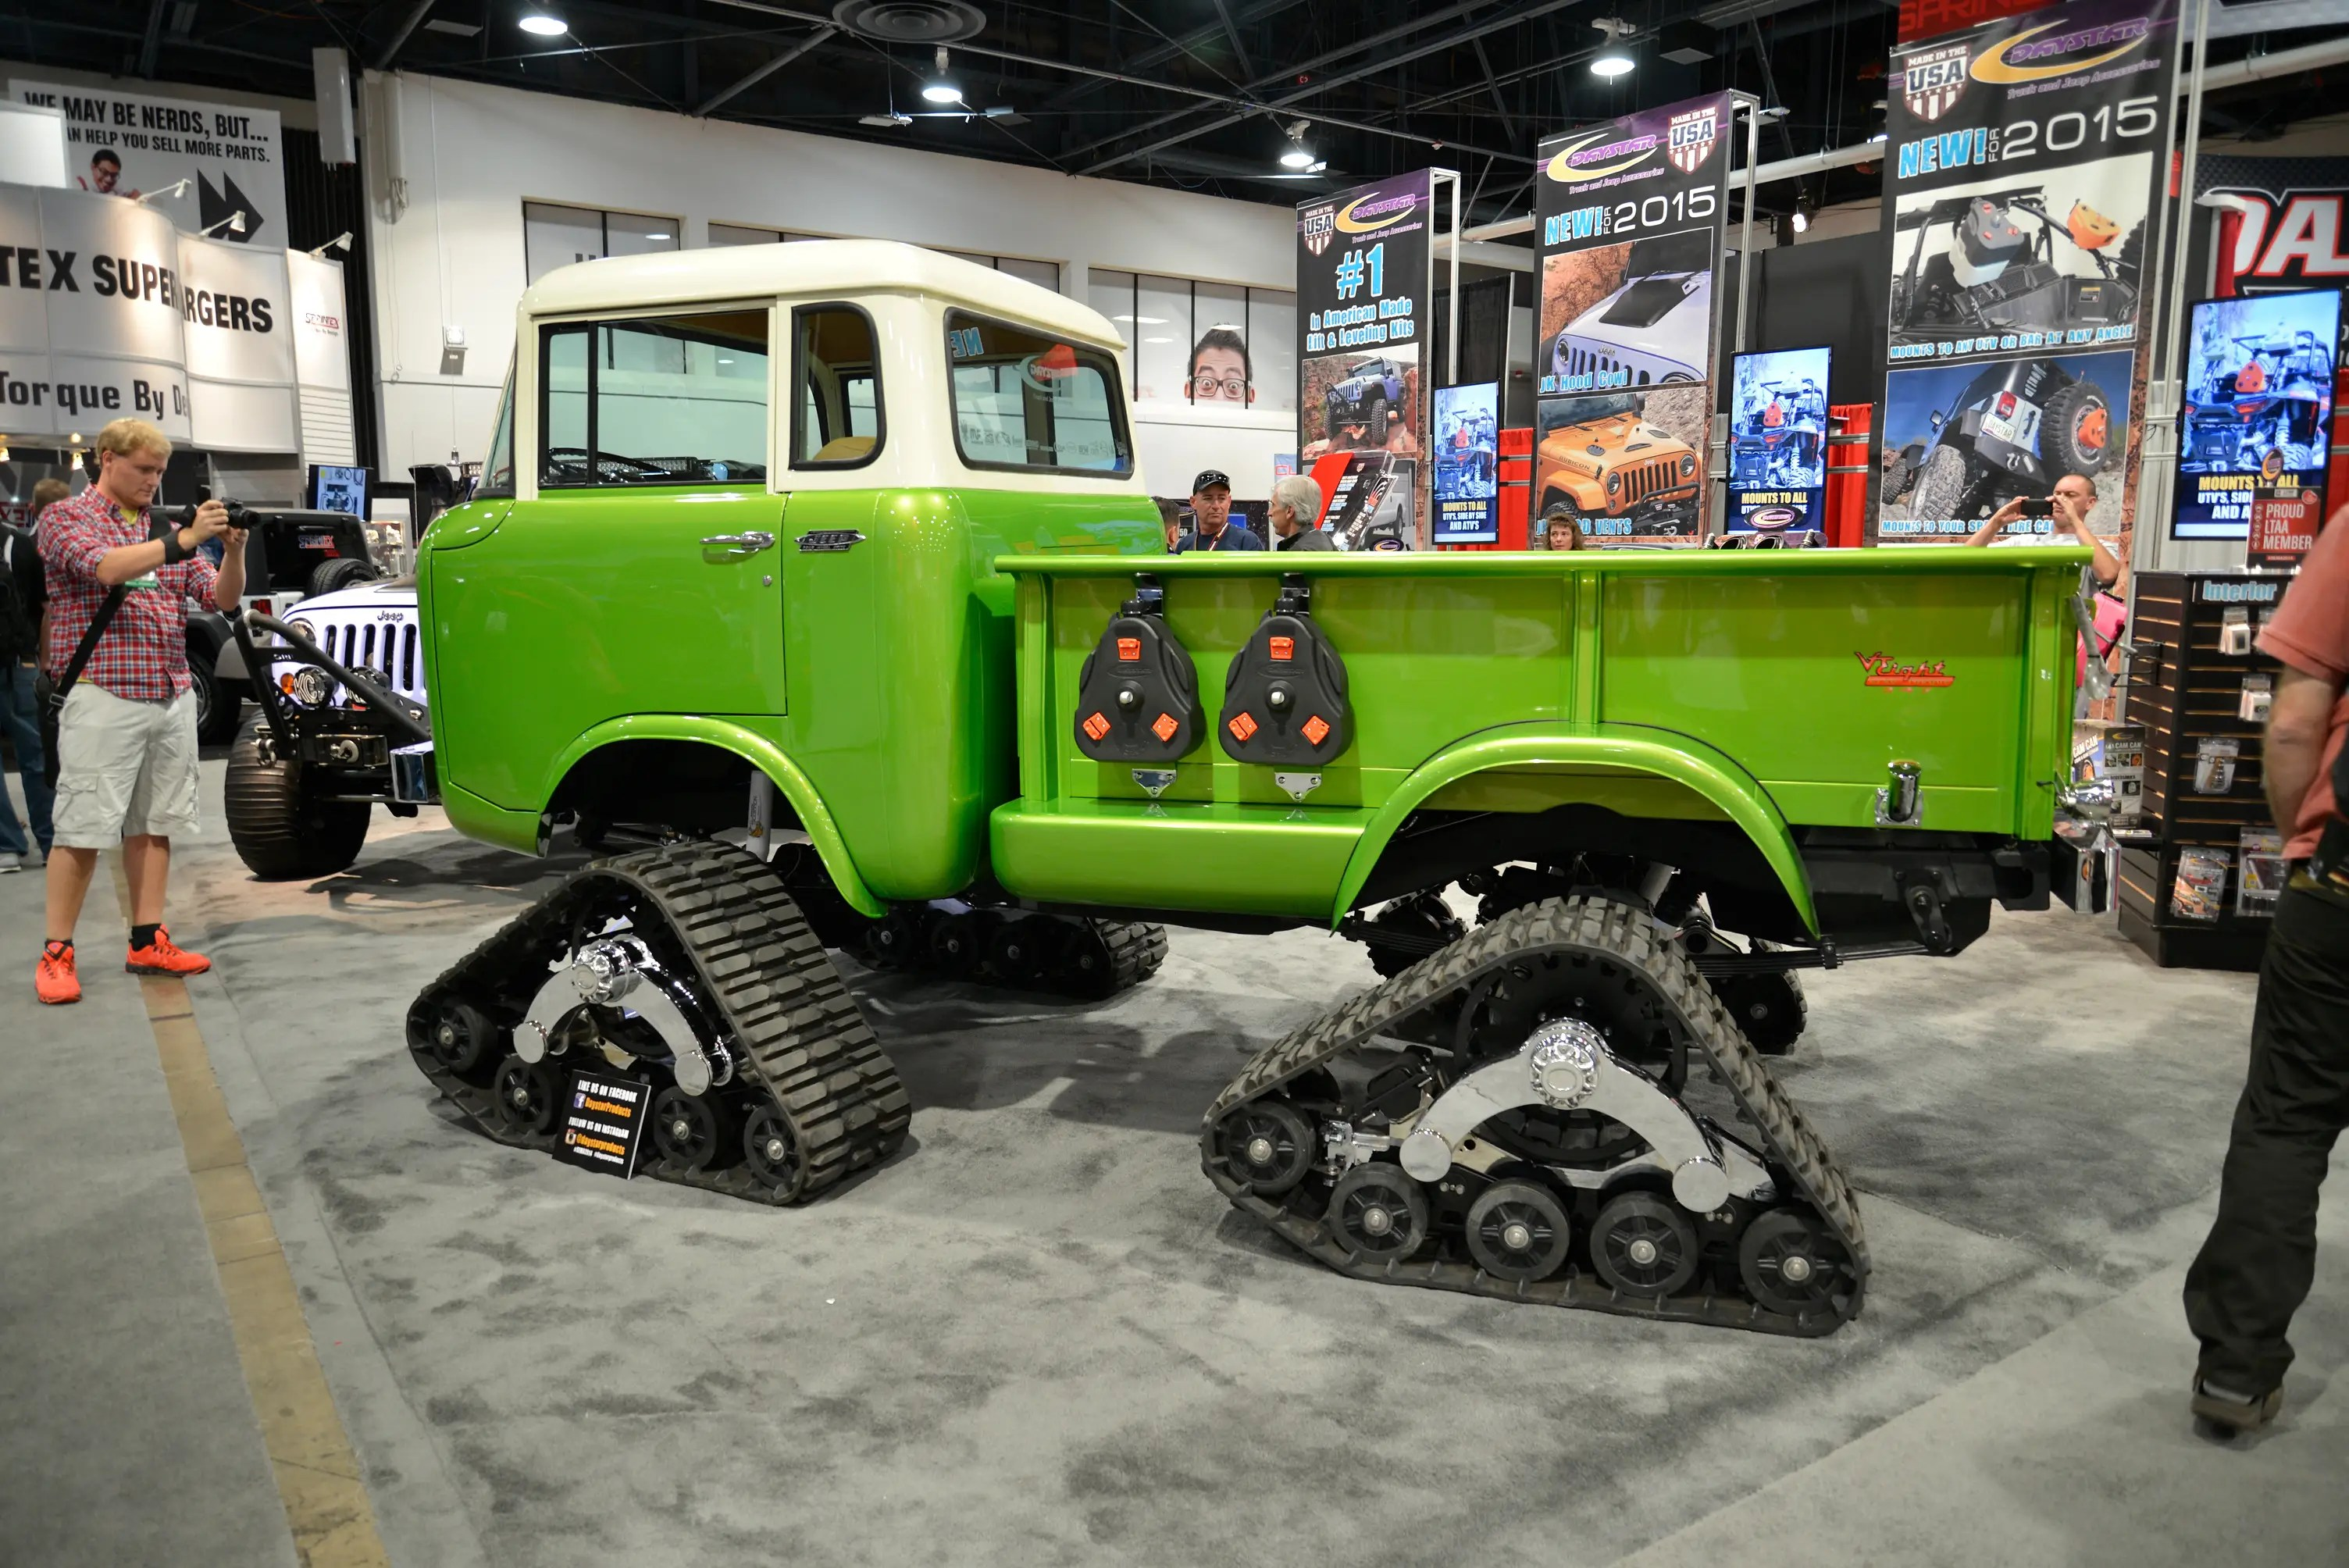 Classics like this Daystar Jeep Forward Control truck with tank tracks ...